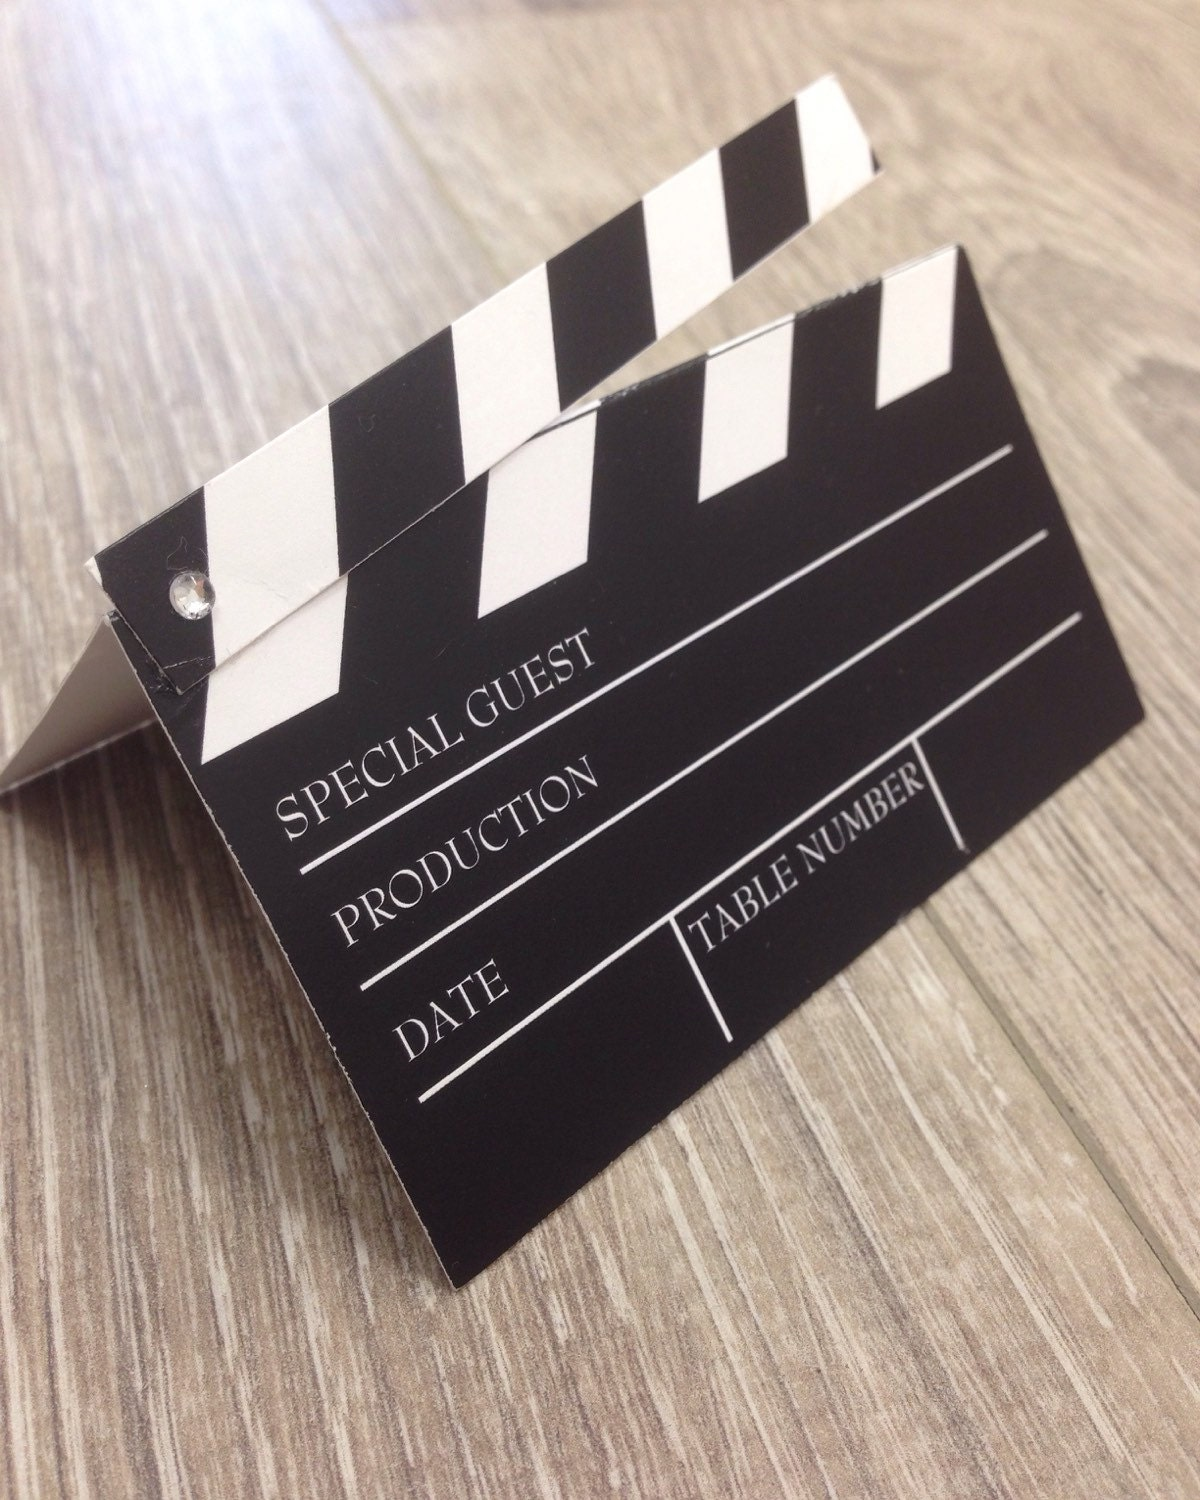 Movie slate place card / escort card comes printed with each